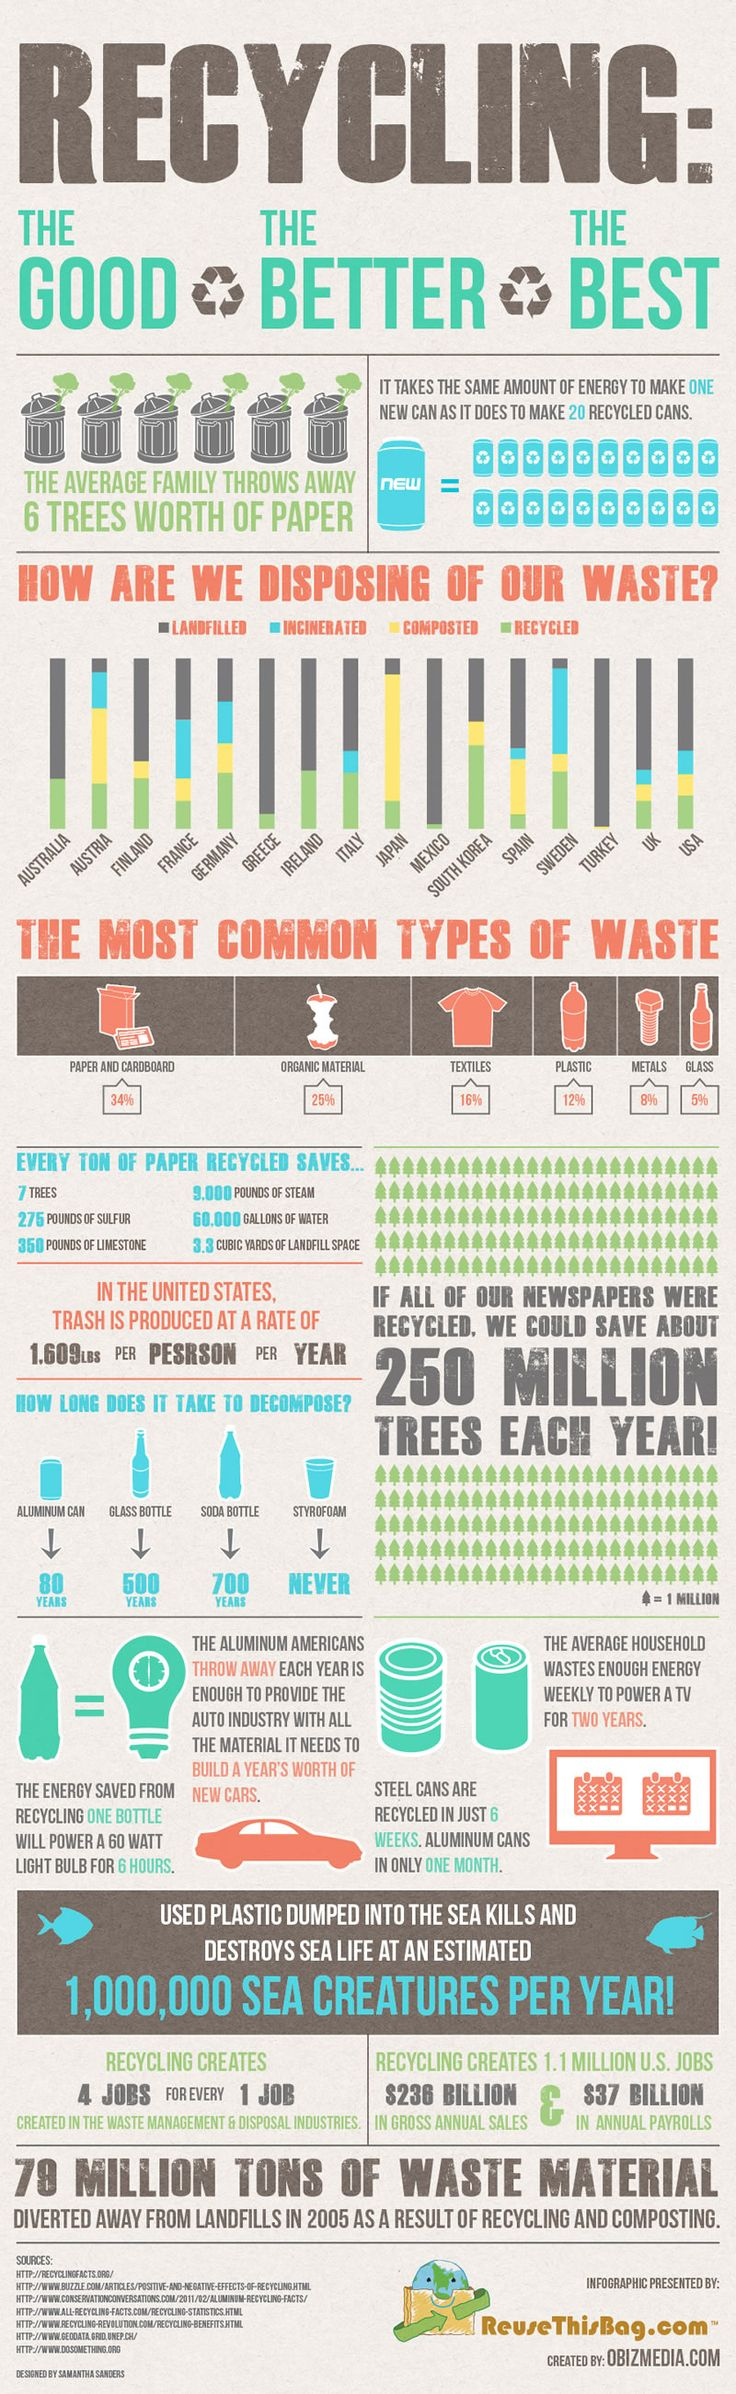 we need more Infographics like this to RE-educate about the environment and the solid waste stream. This is how we Change our future